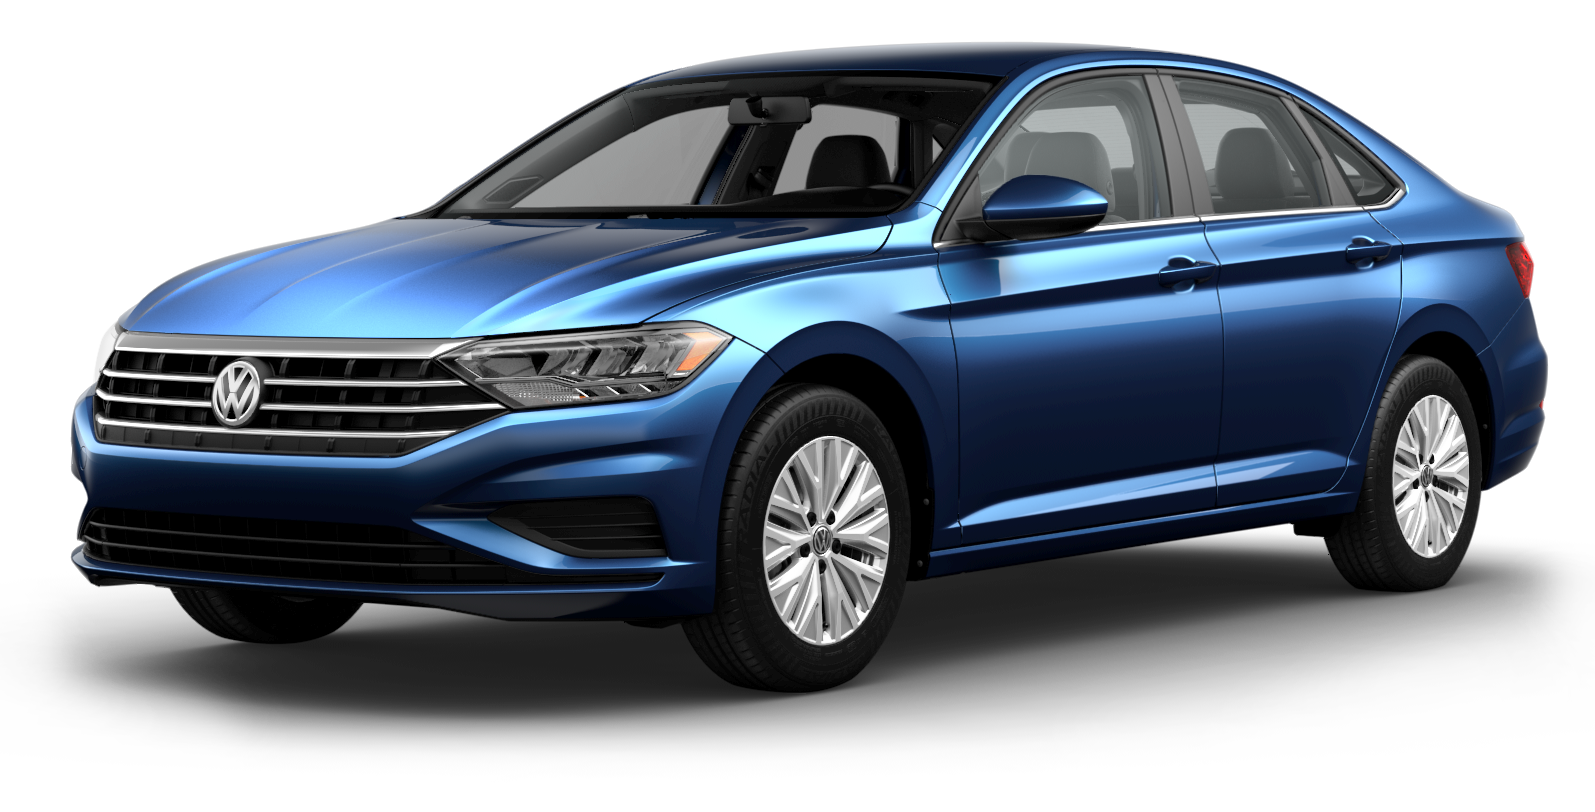 Review & Compare Volkswagen Jetta at Larry H. Miller Volkswagen Avondale